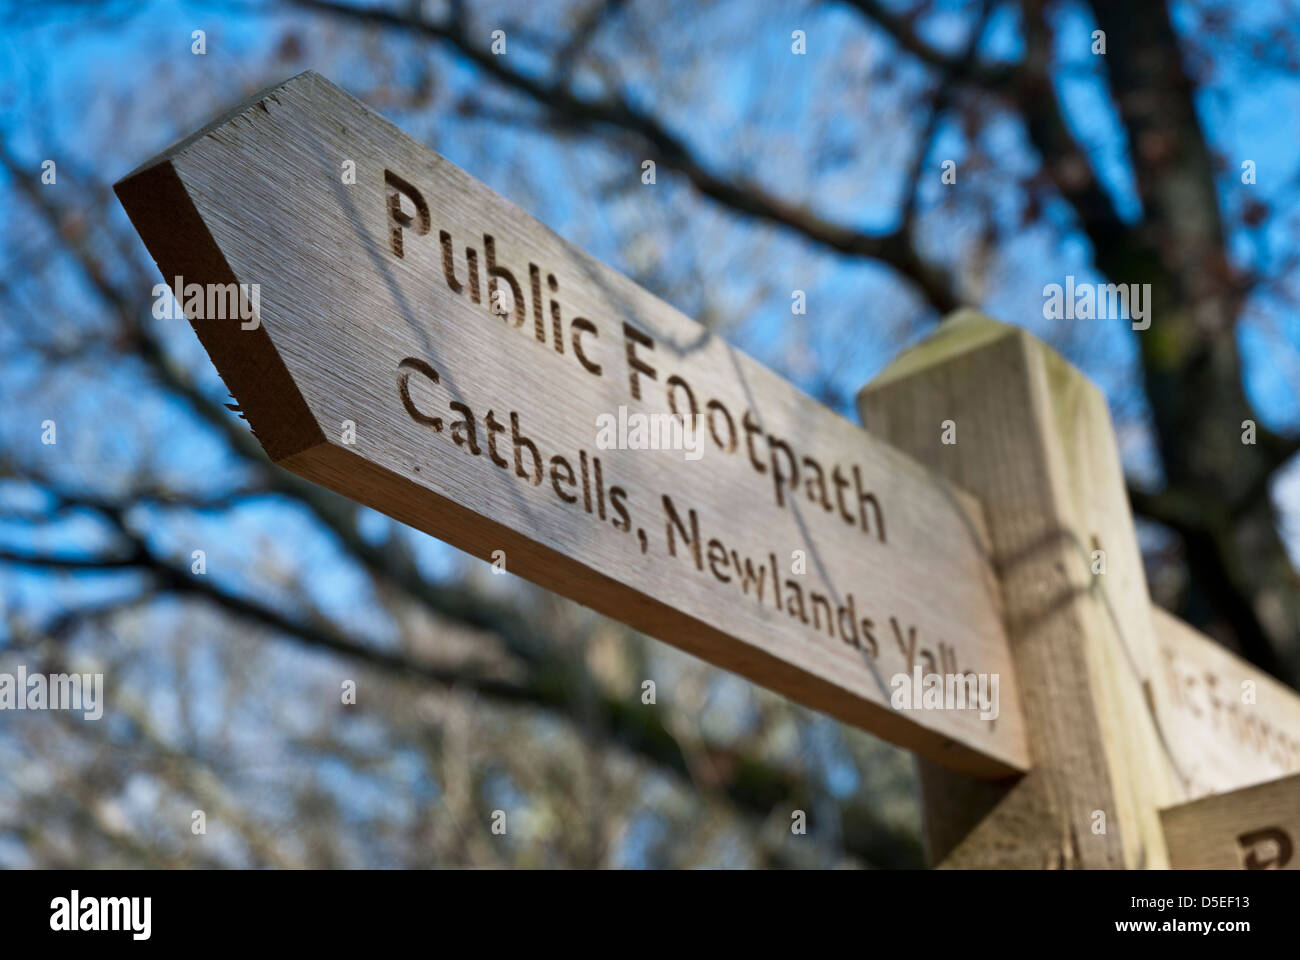 Wooden public footpath sign to Catbells and Newlands Valley, Lake District, Cumbria - Stock Image